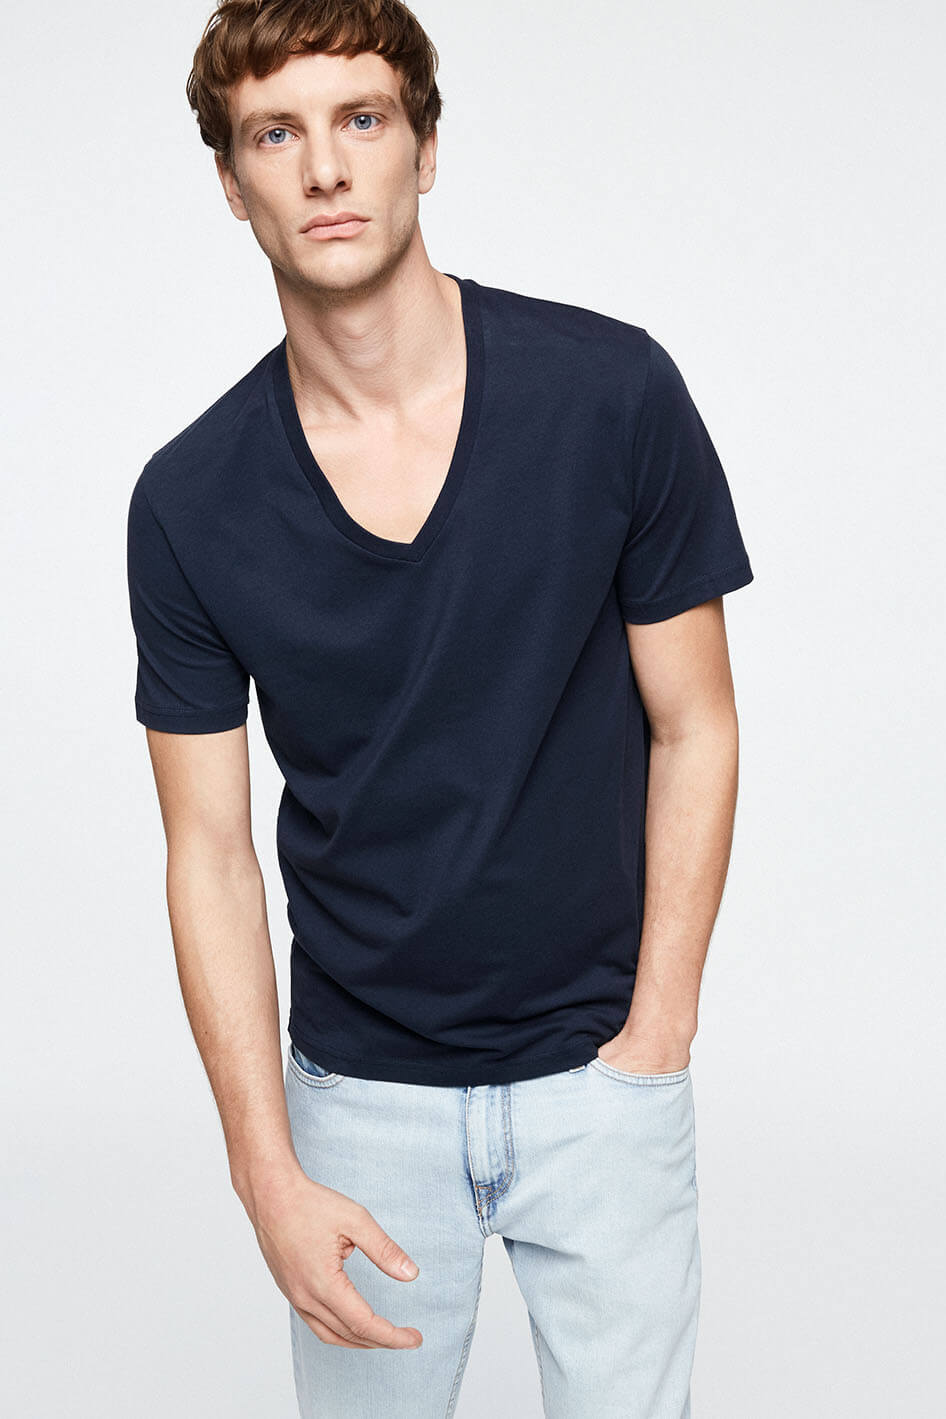 T-Shirt Chaarlie Blau from LOVECO